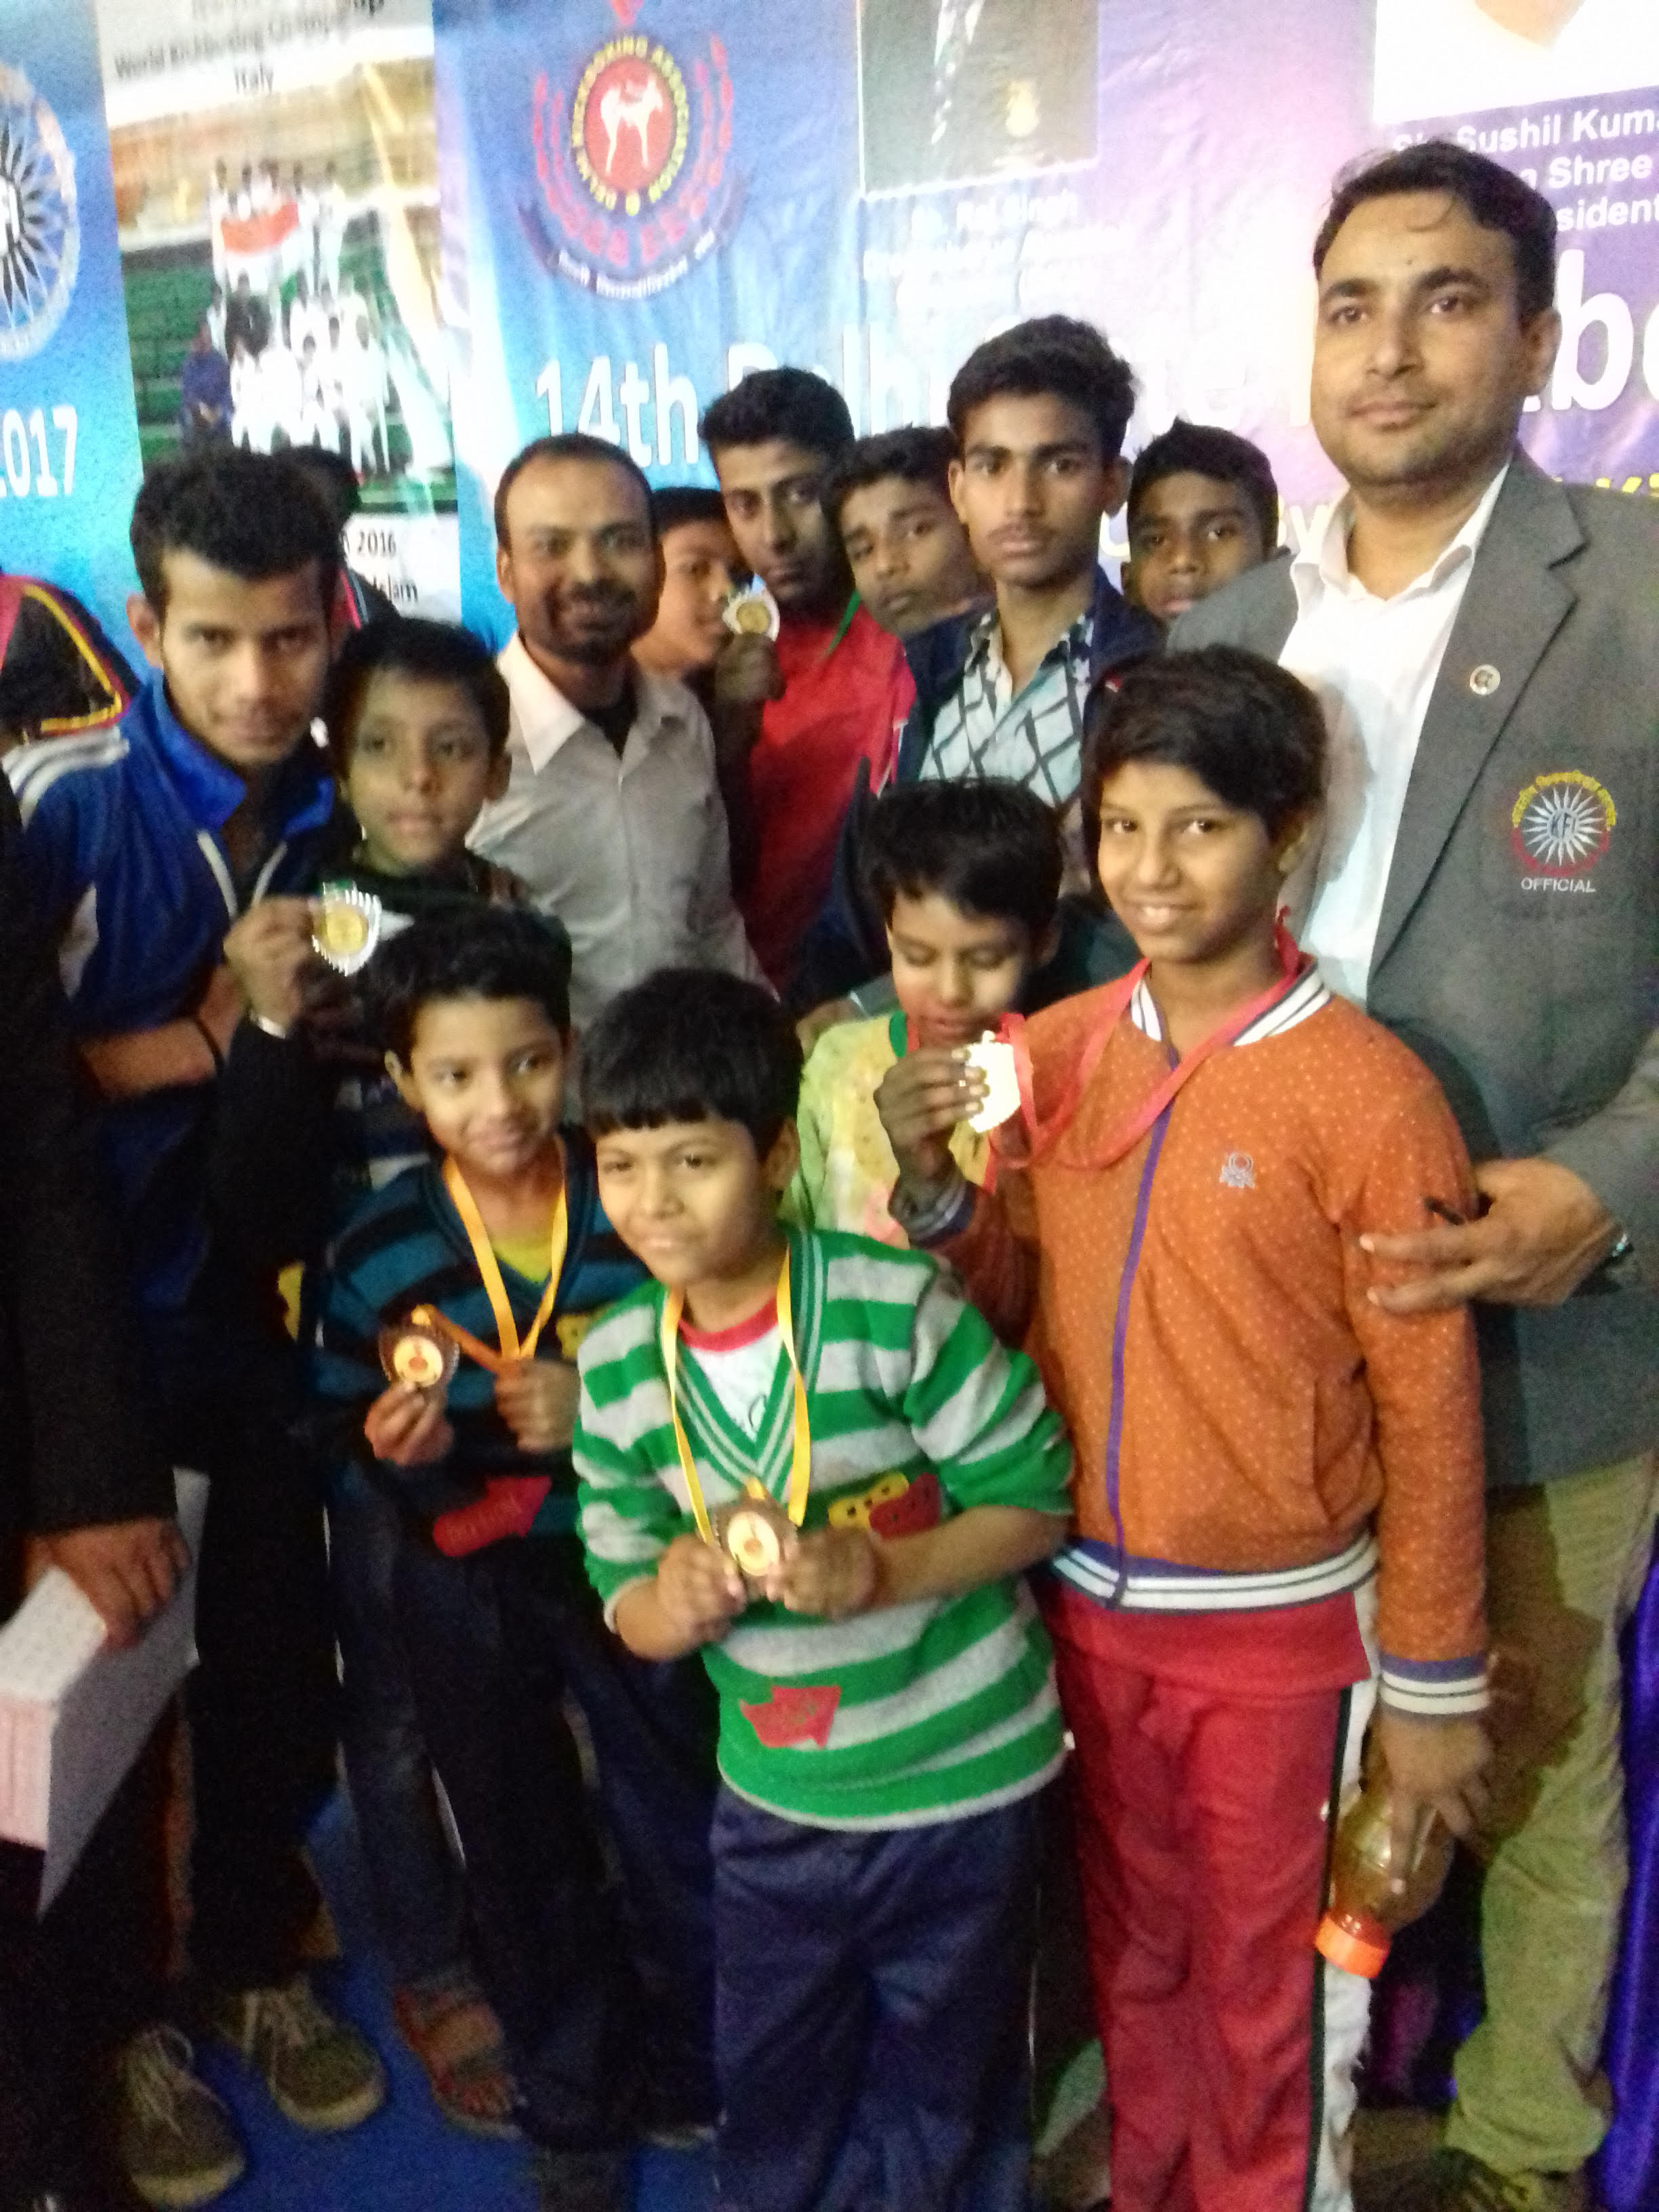 Anand won silver medal in Delhi state kick boxing championship